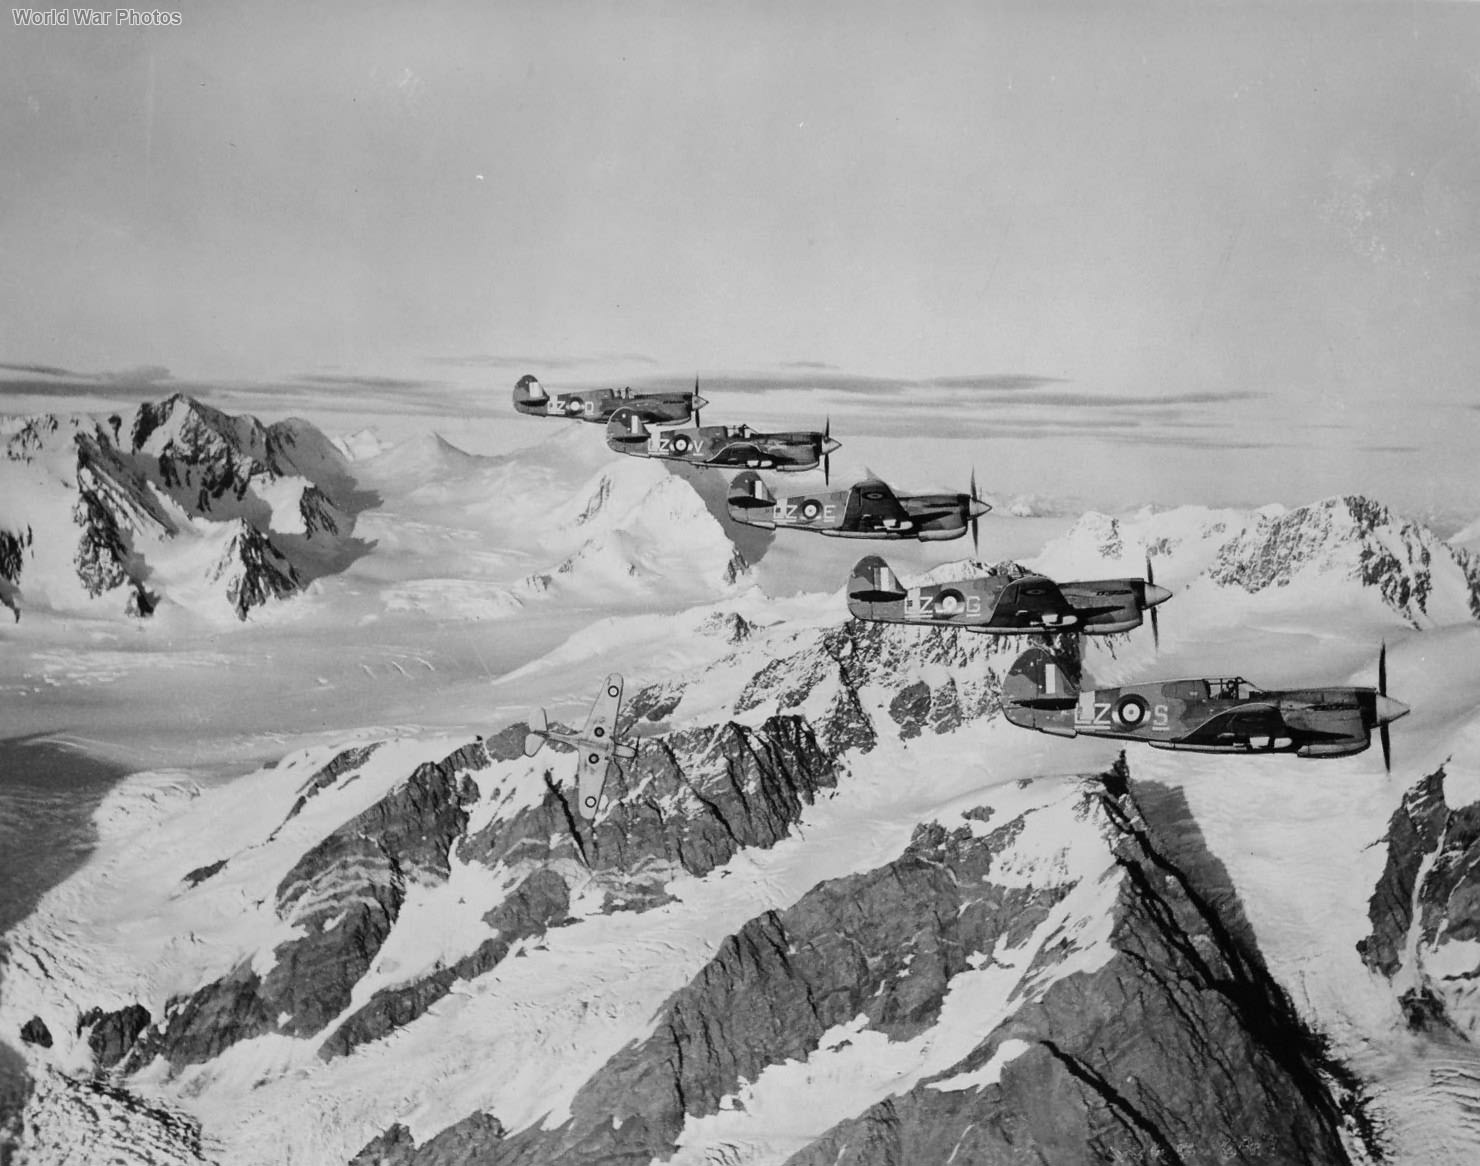 P-40s of No. 111 (f) Squadron, RCAF in flight